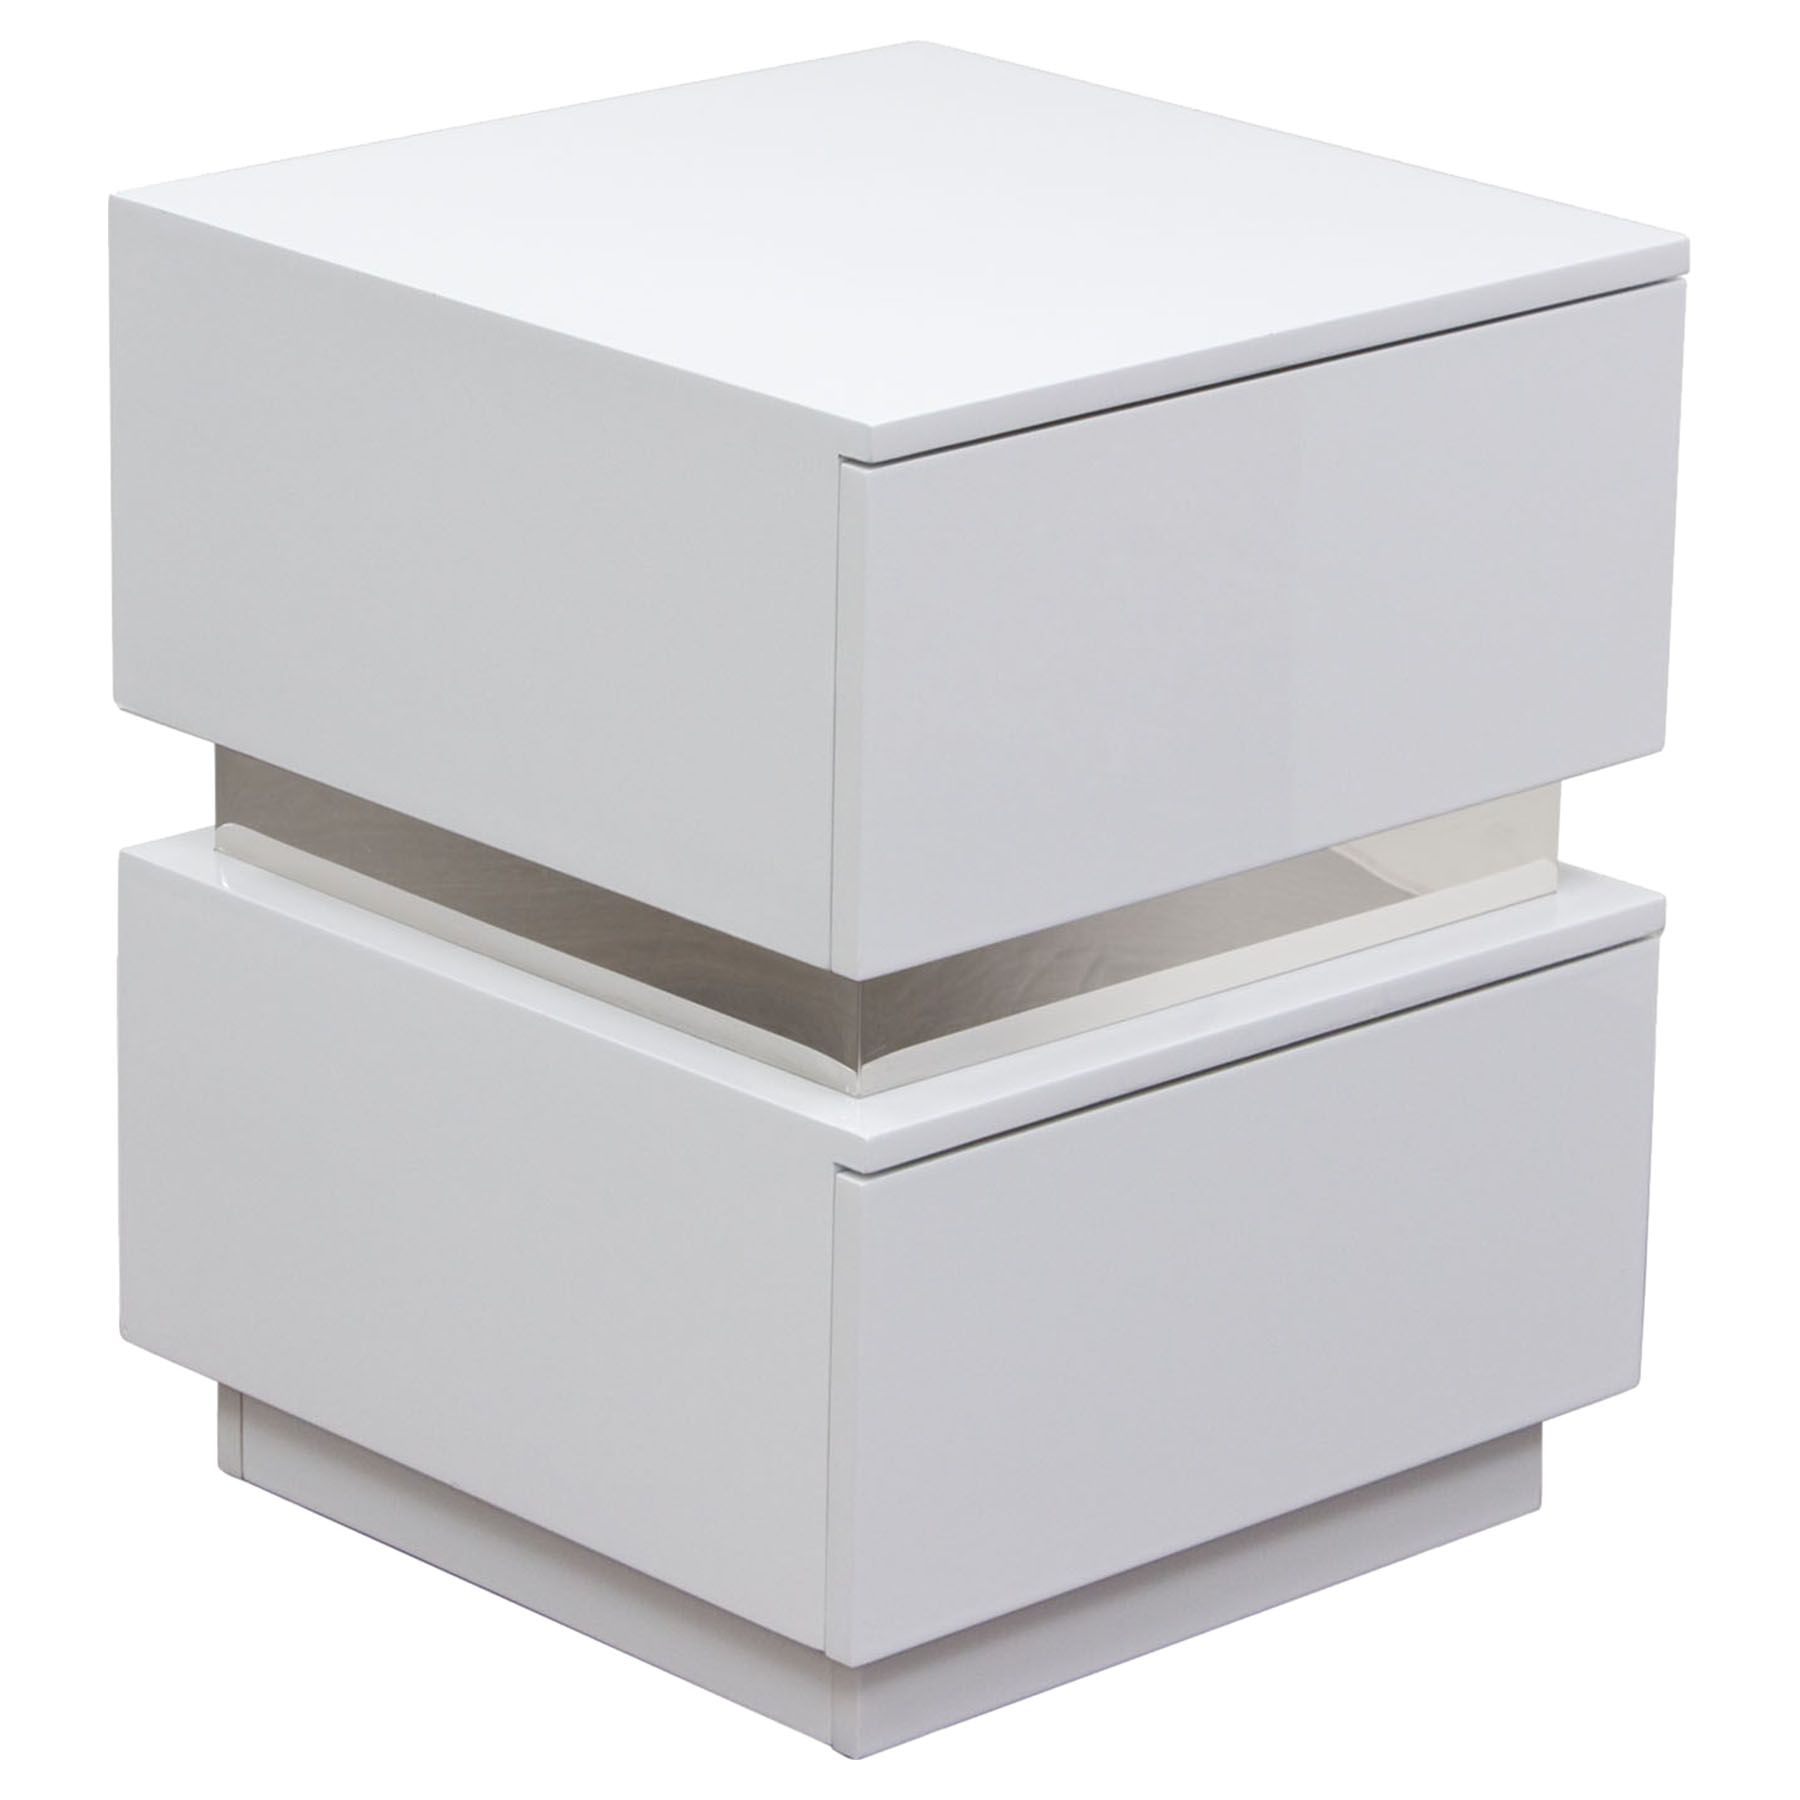 elle drawers accent table high gloss white dcg ellenswh night tall mirror home goods sofa steel bedside bedroom nightstand lamps tesco bistro set wine cabinet battery lamp console